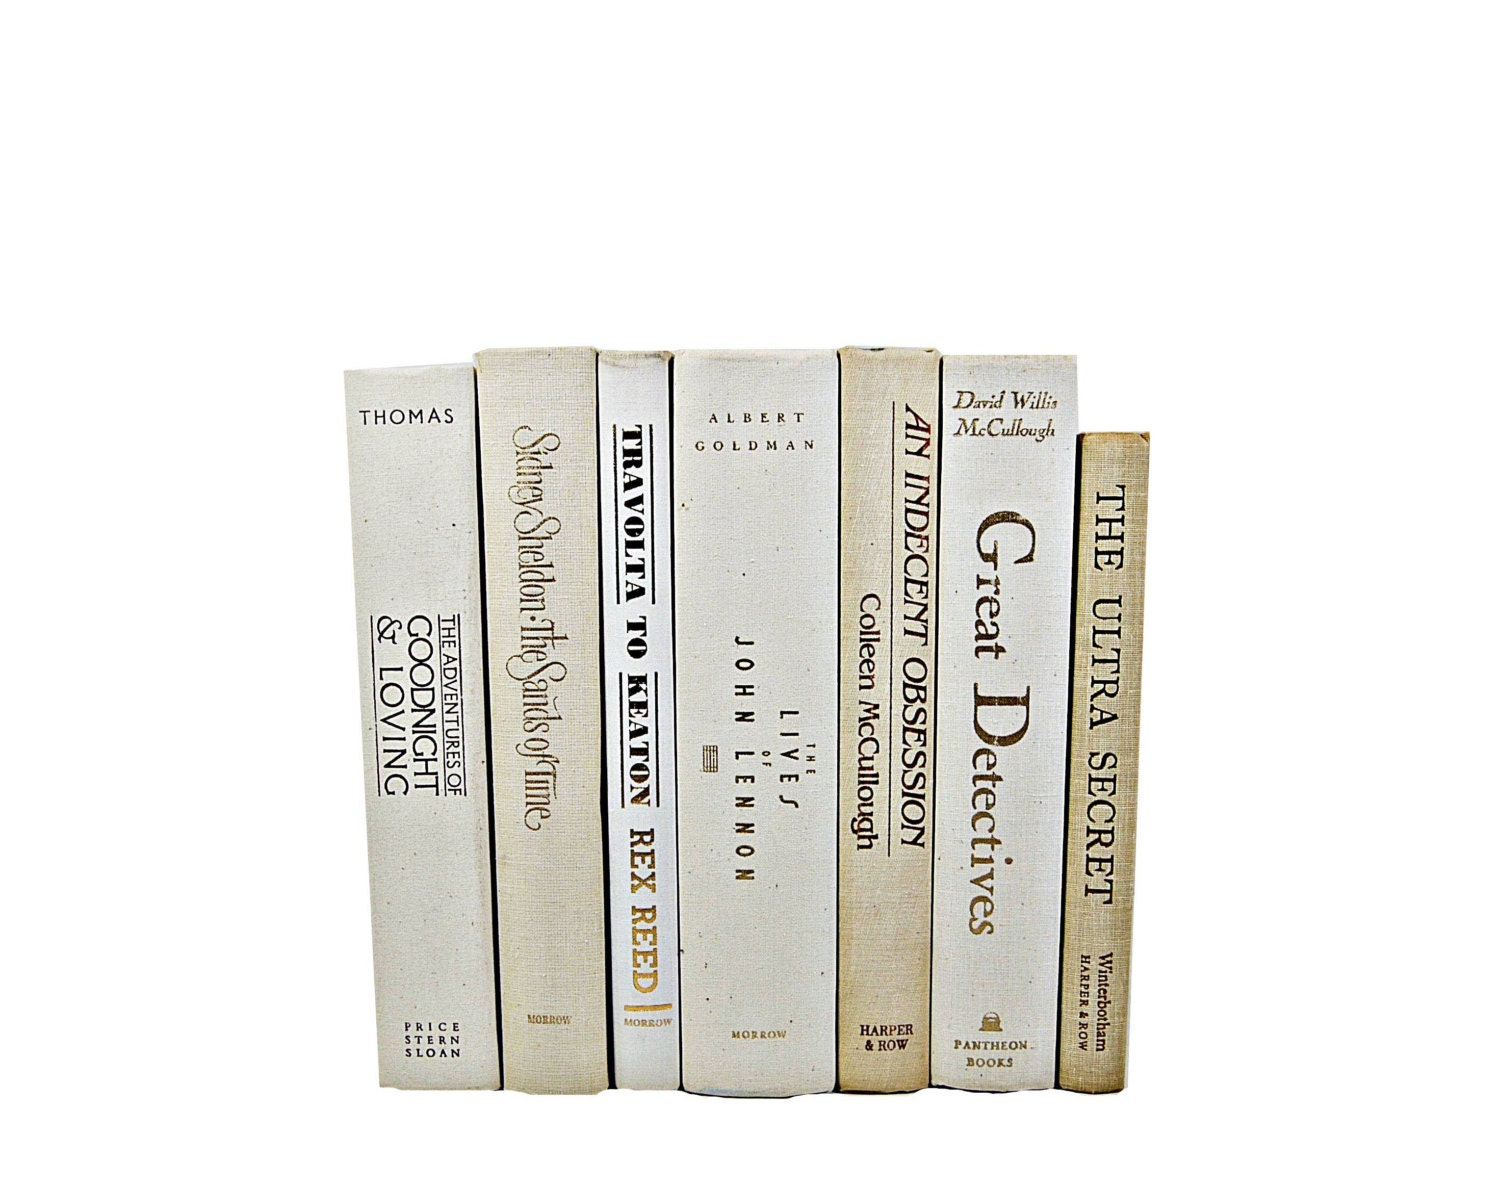 BEIGE WHITE  Decorative Books, Table Settings, Wedding Centerpiece Decor, Book Collection, Home  Decor, Interior Design,ivory - HucksterHaven